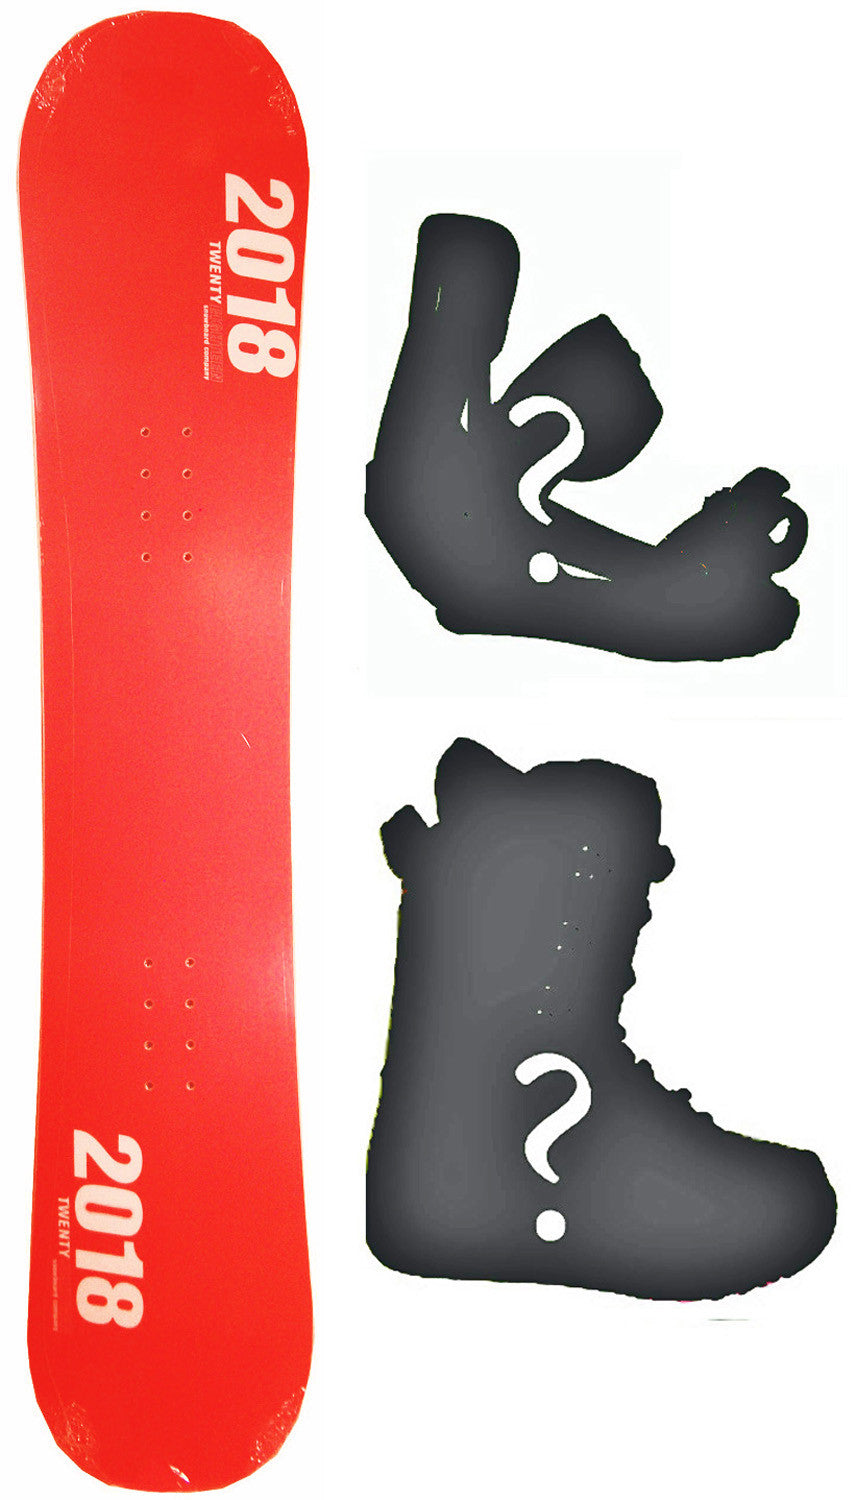 154cm  Black Fire Team Red Rocker Snowboard, Build a Package with Boots and Bindings